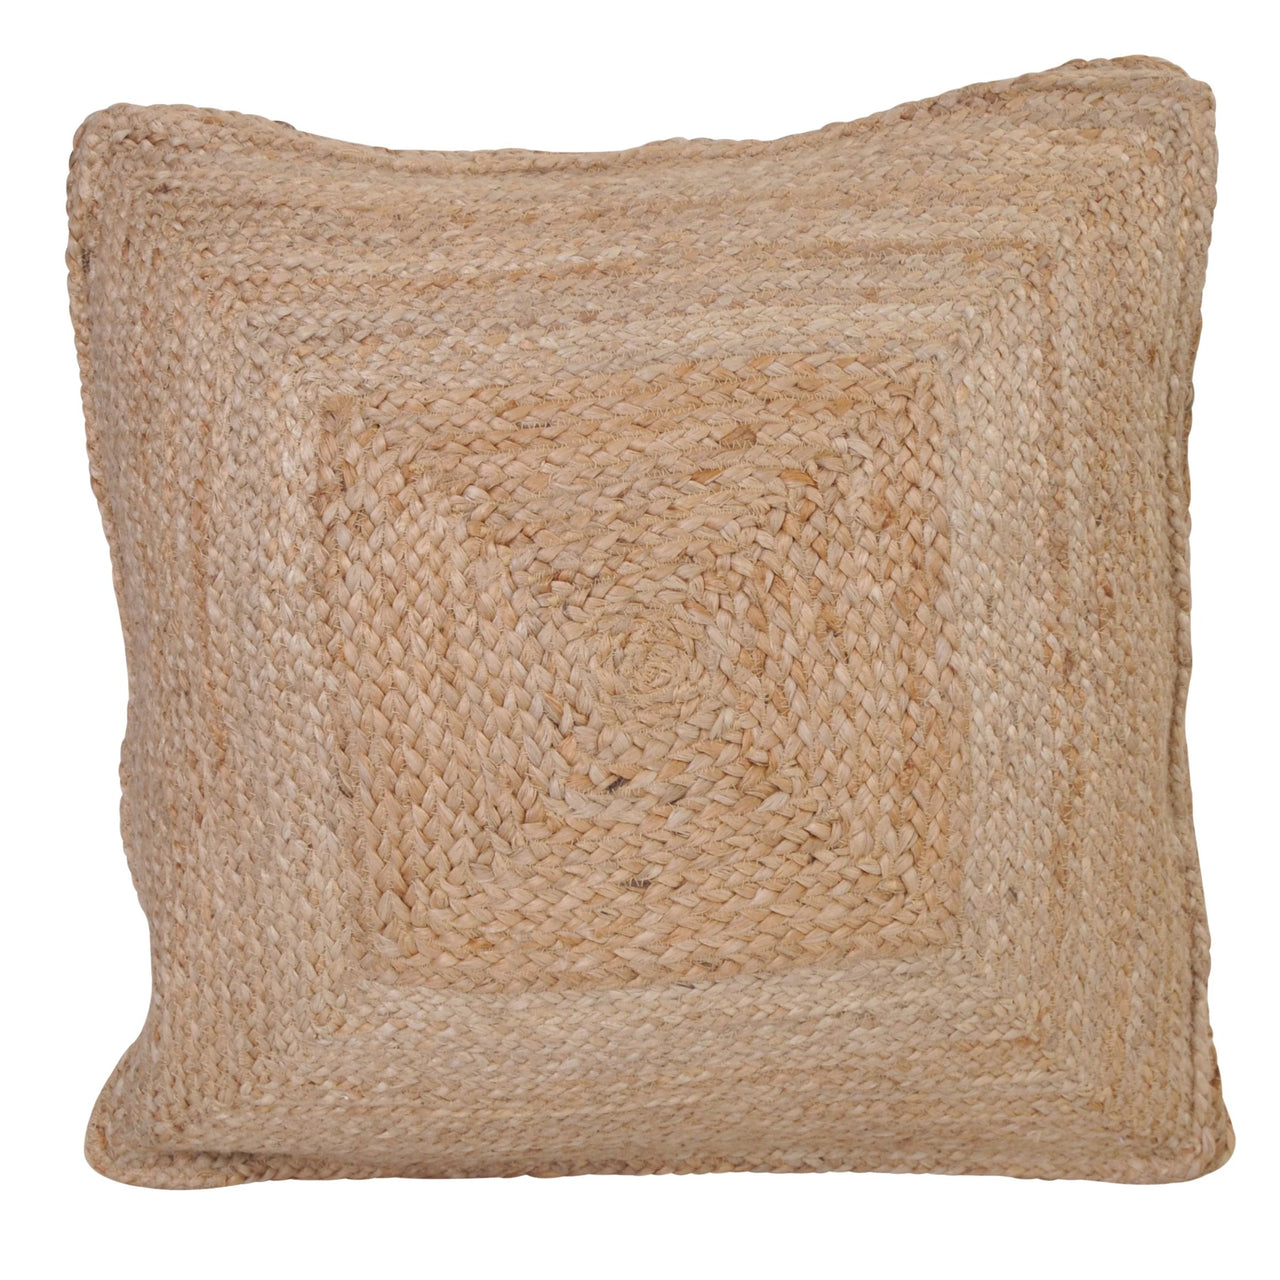 jute floor cushion large pillow euro 60cm square earthy natural organic